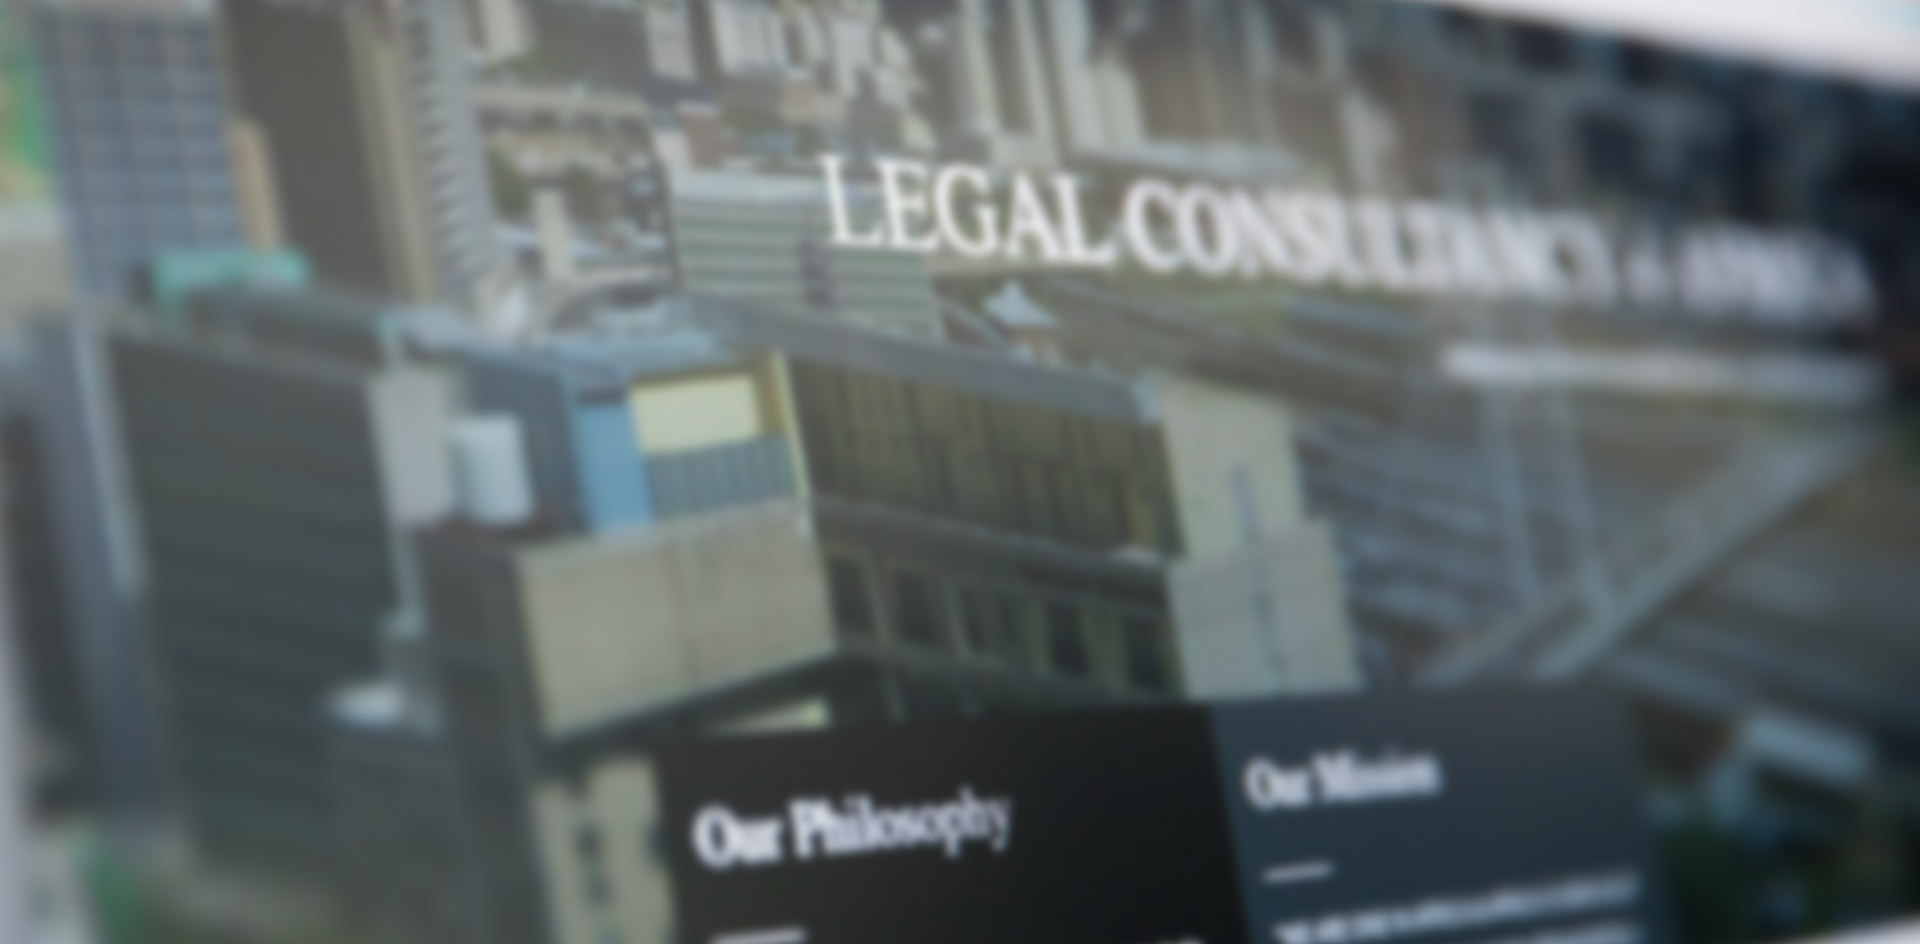 Legal Consulting 4 Africa Web Design & Graphic Design by Black Rooster Studios